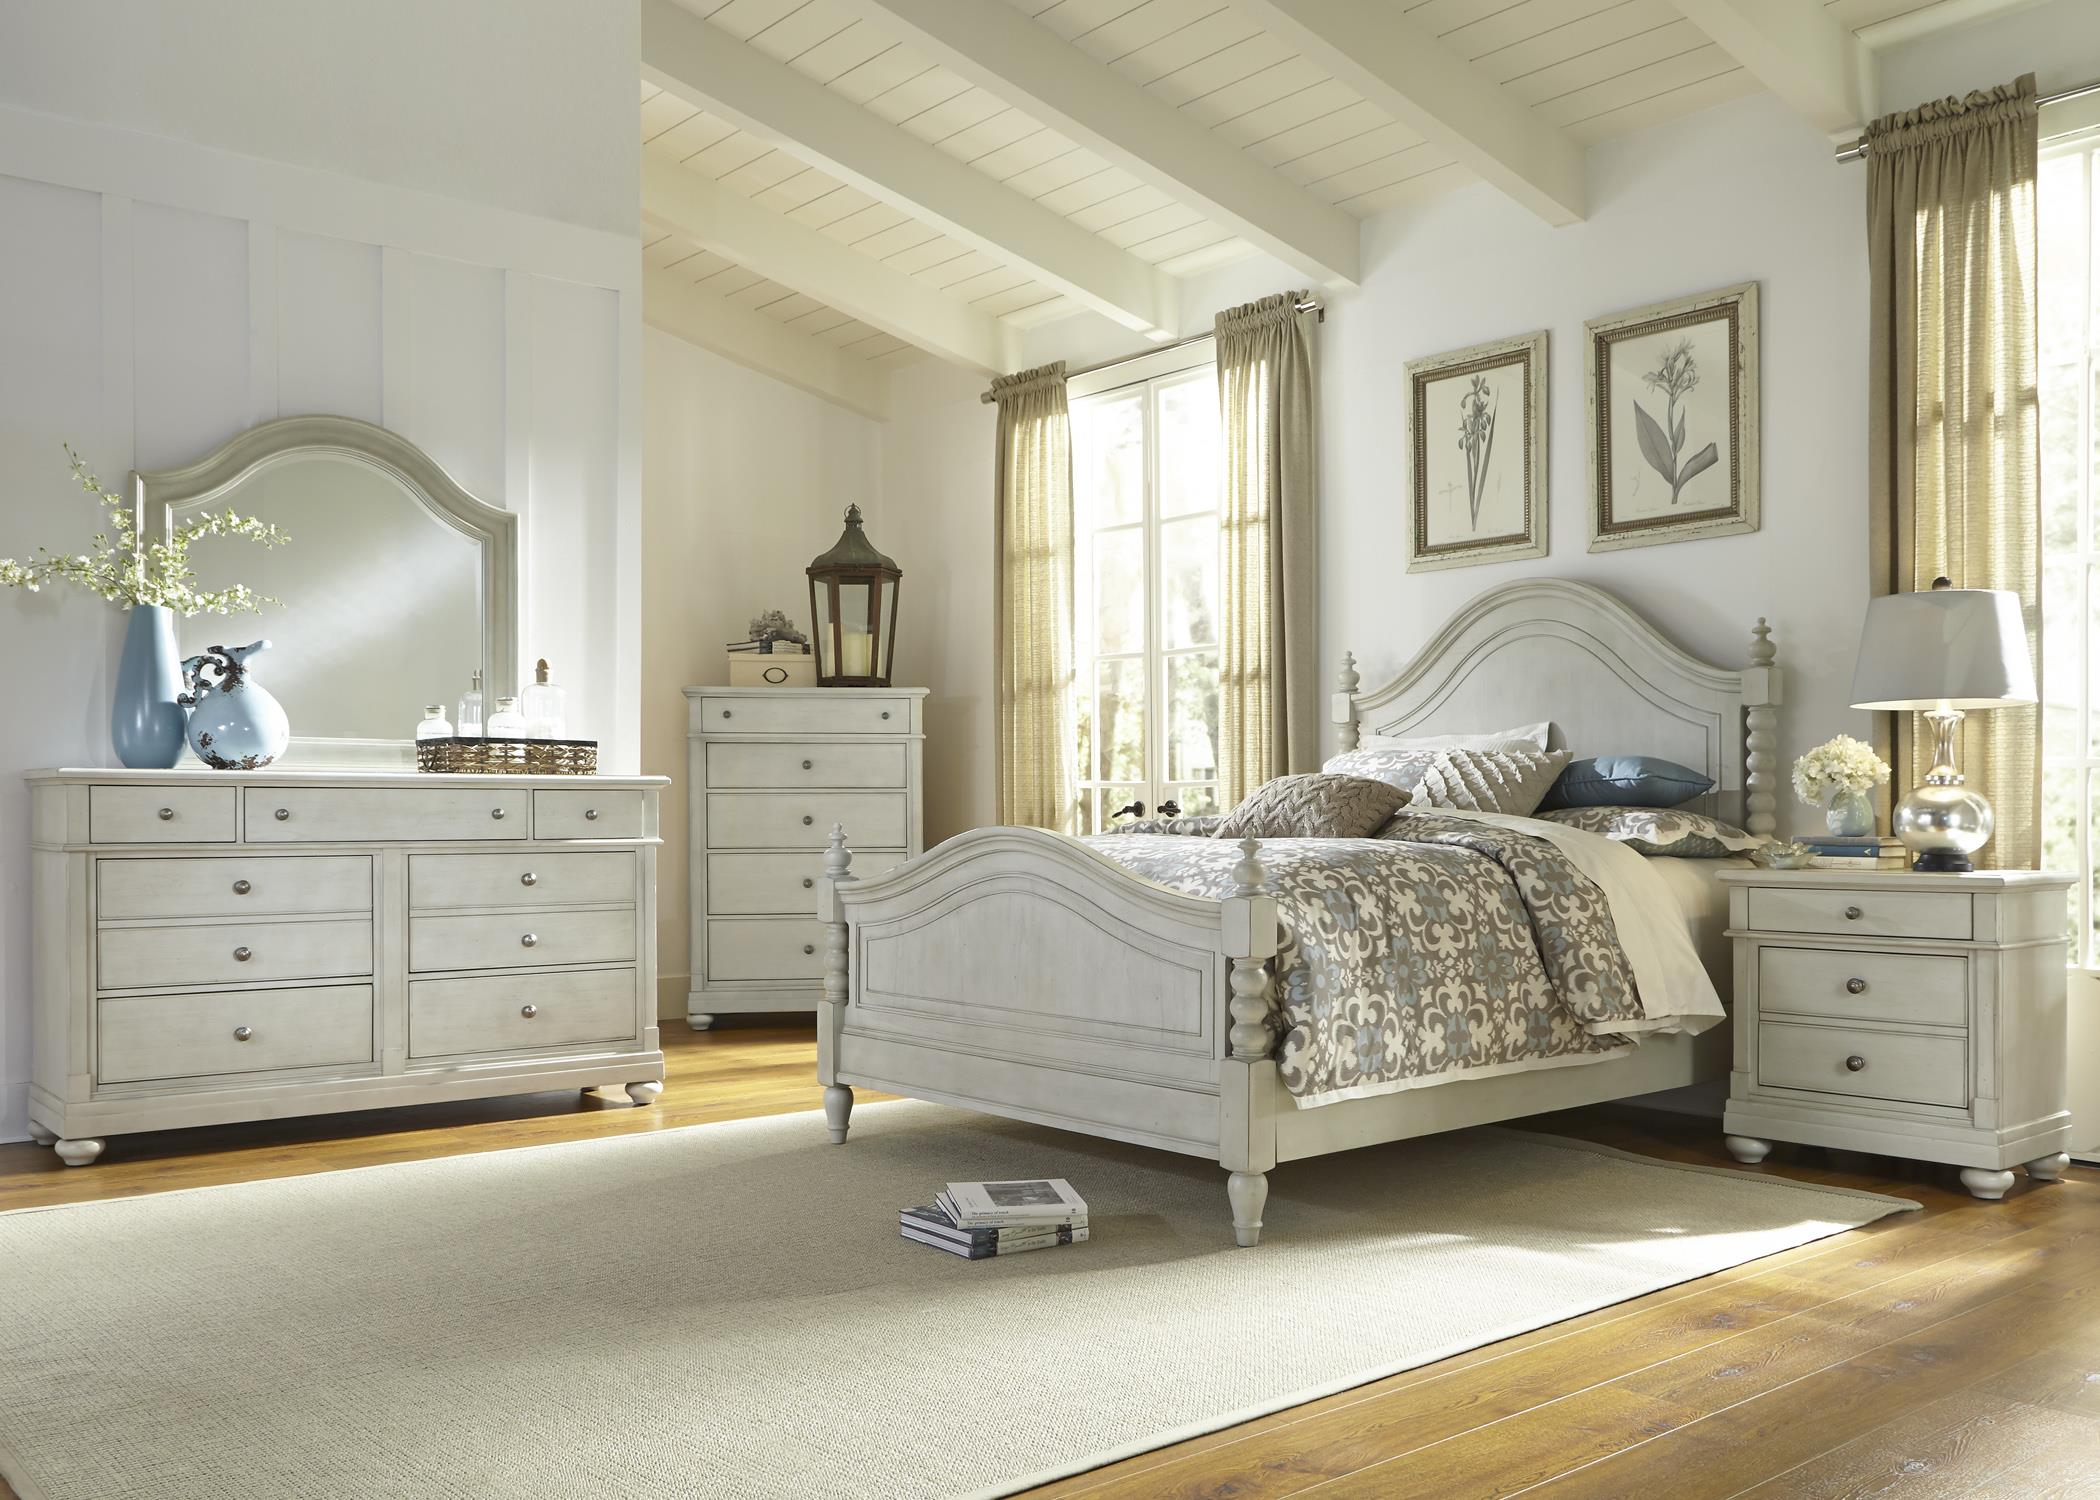 Queen Poster Bed With Barley Twist Accents By Liberty